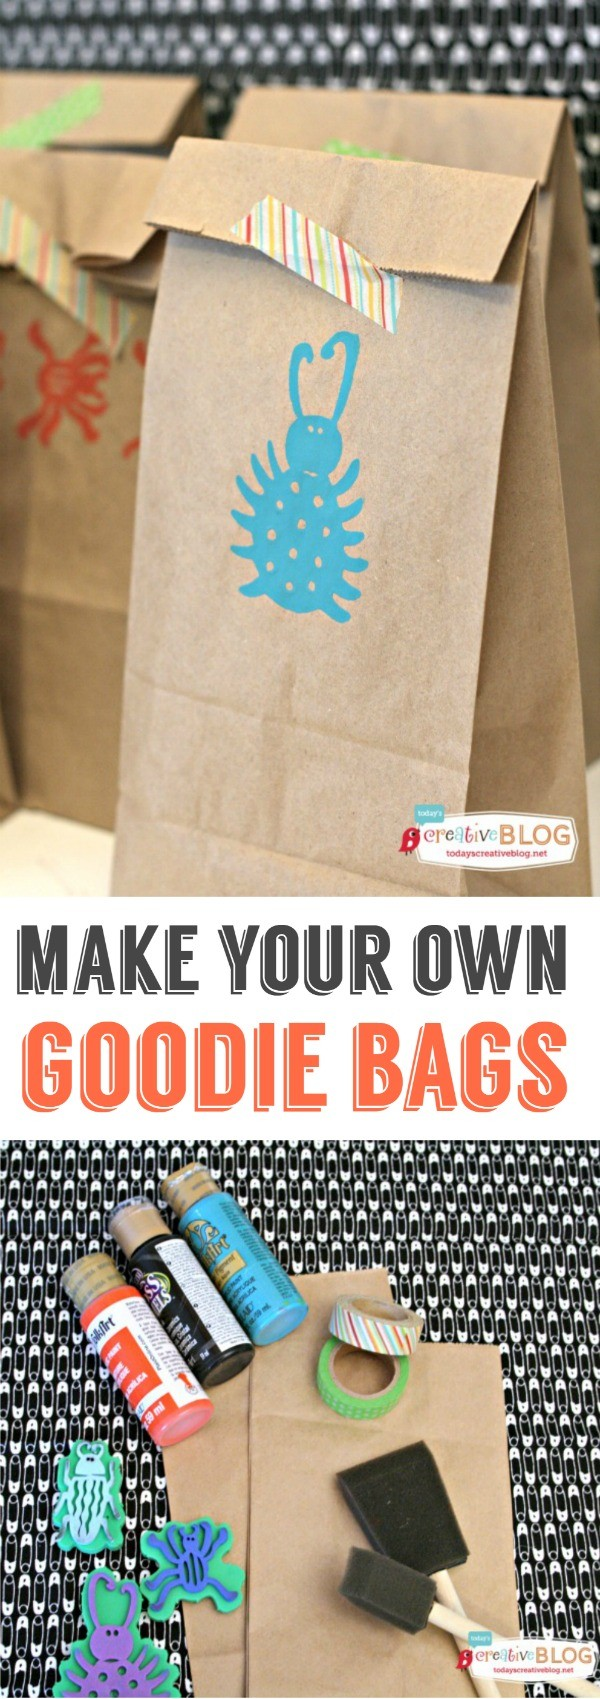 DIY Birthday Goodie Bags - Make your own goodie bags or gift wrap the simple way! See more creative ideas on TodaysCreativeBlog.net